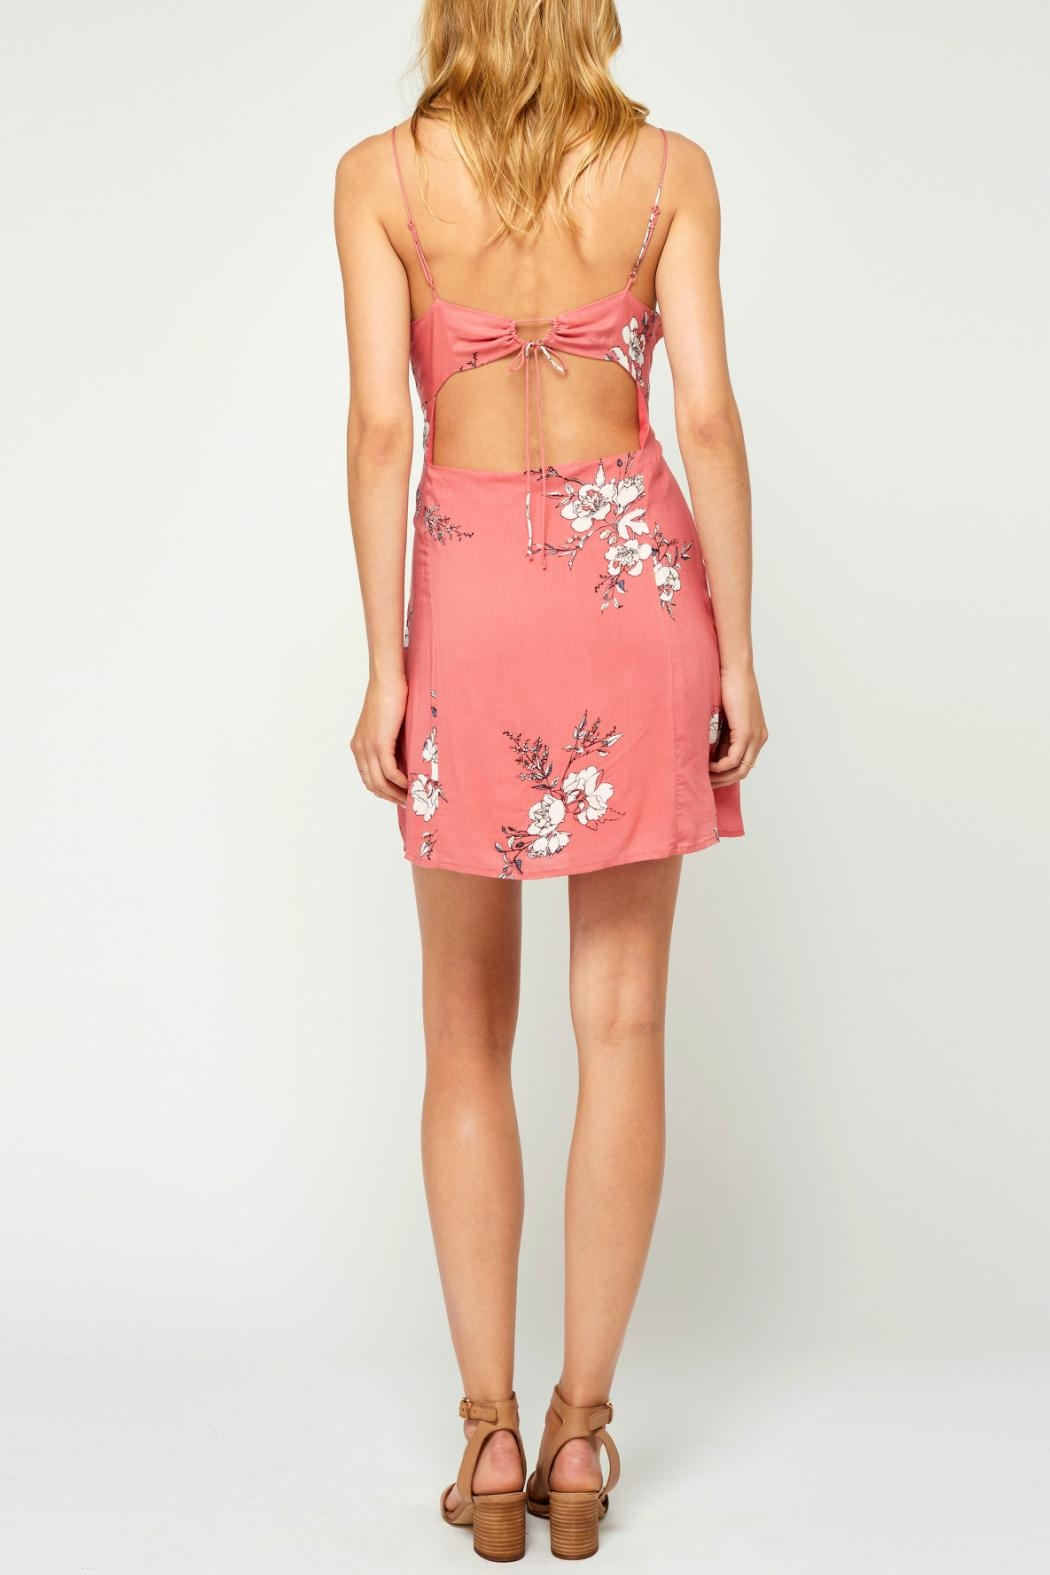 Gentle Fawn Floral Openback Dress - Side Cropped Image